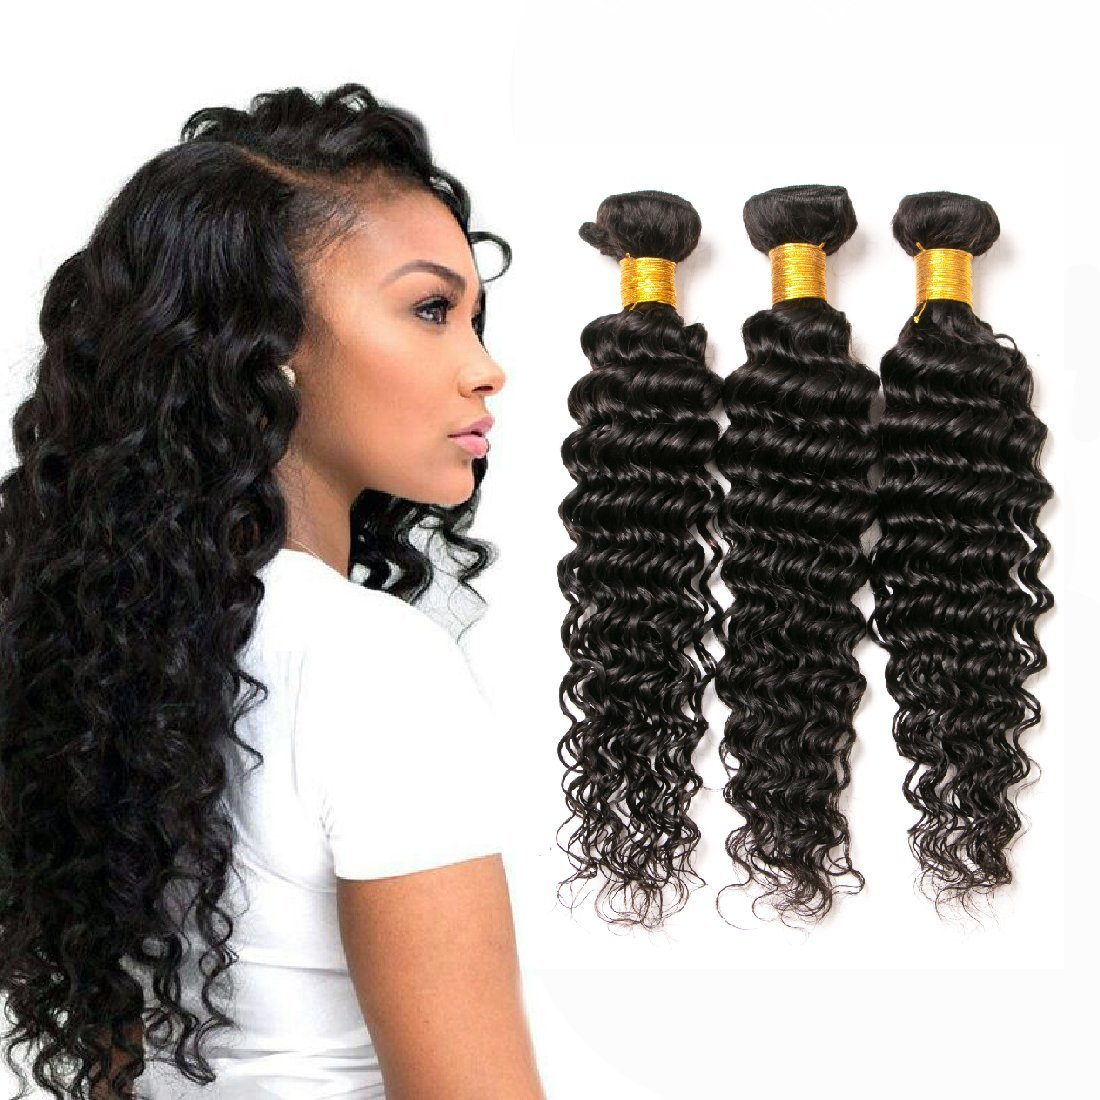 Deep Wave Curly Hair 3 Bundles Brazilian Human Hair Bundles Double Weft  100G Pcs Unprocessed Virgin Remy Hair Weave Sew In Hair Extensions Wet And  Wavy ... 35cb43ef7a21